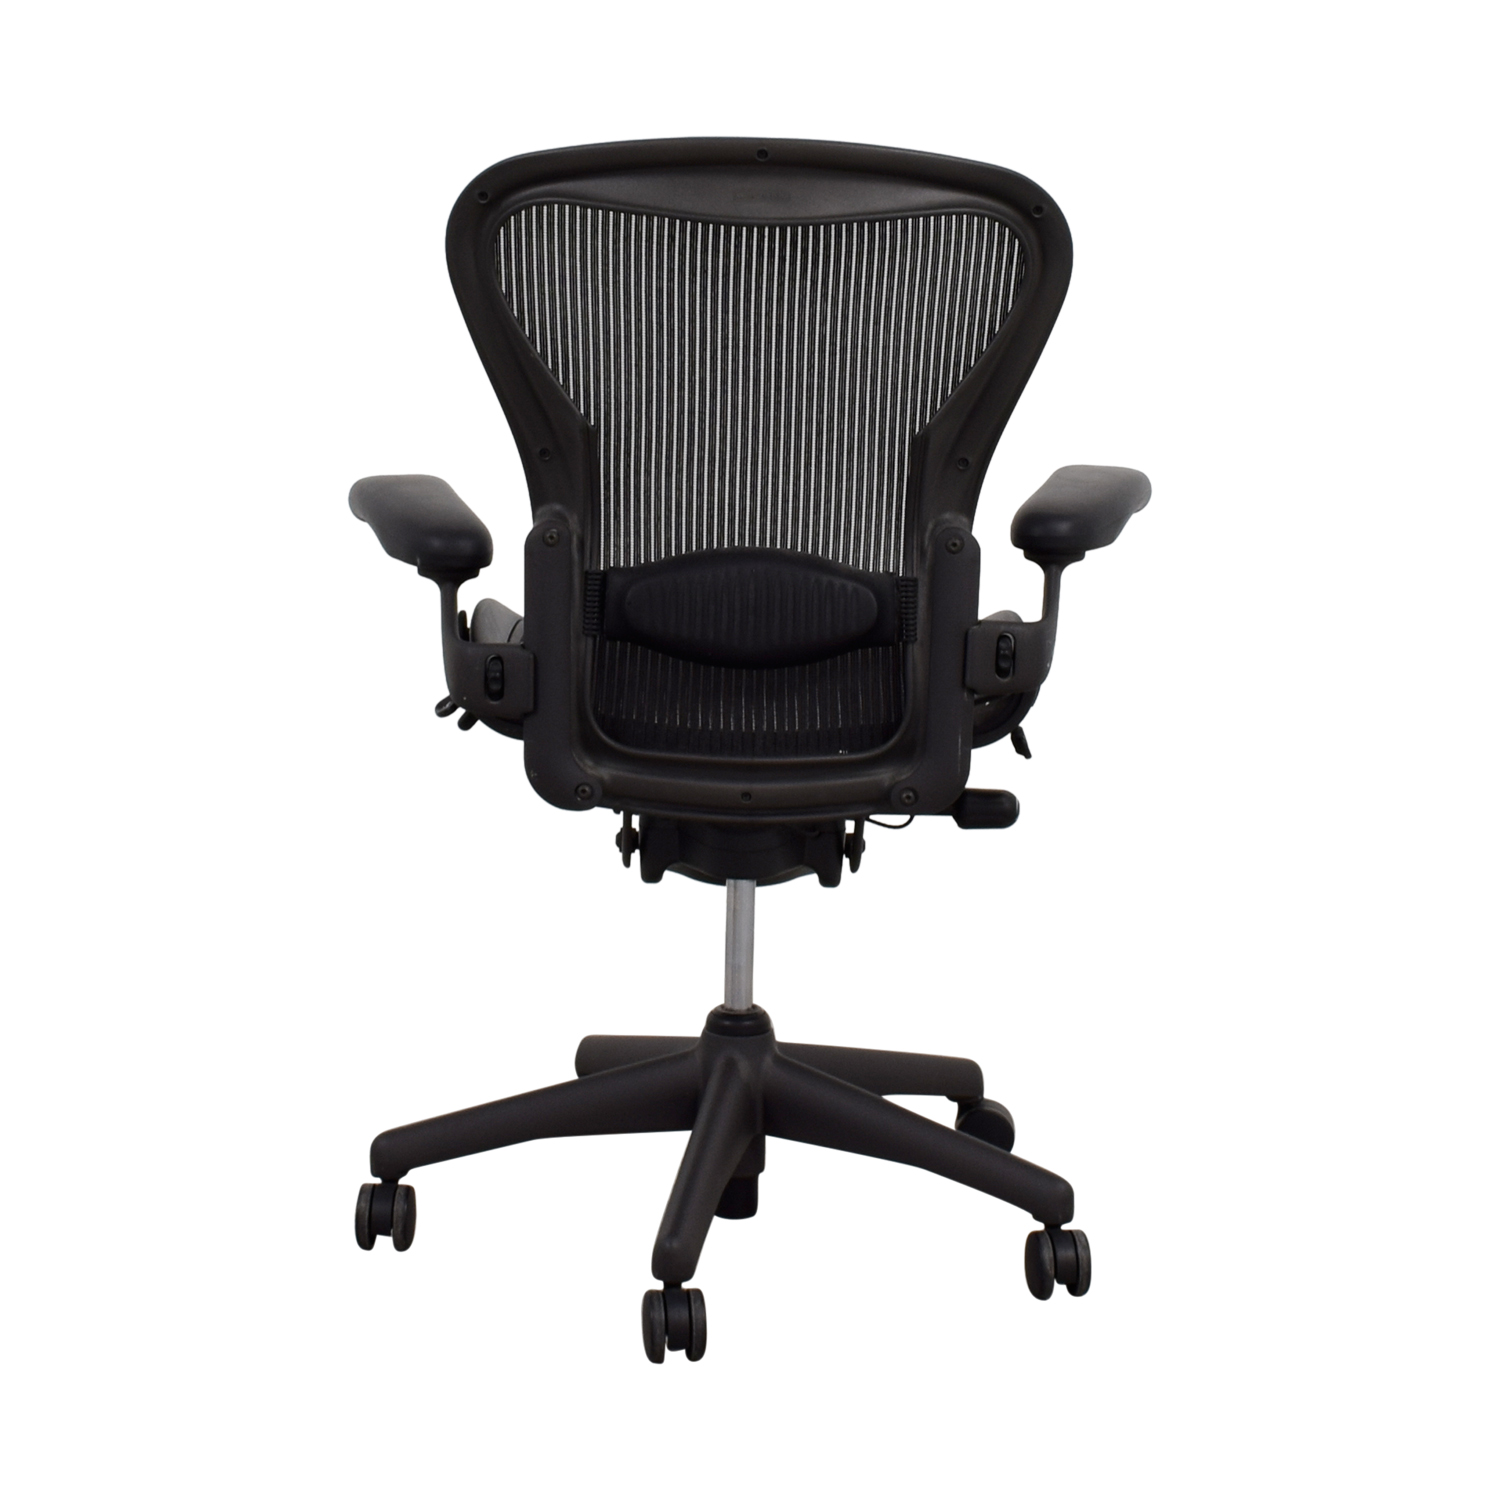 Herman Miller Herman Miller Aeron Black Chair on sale